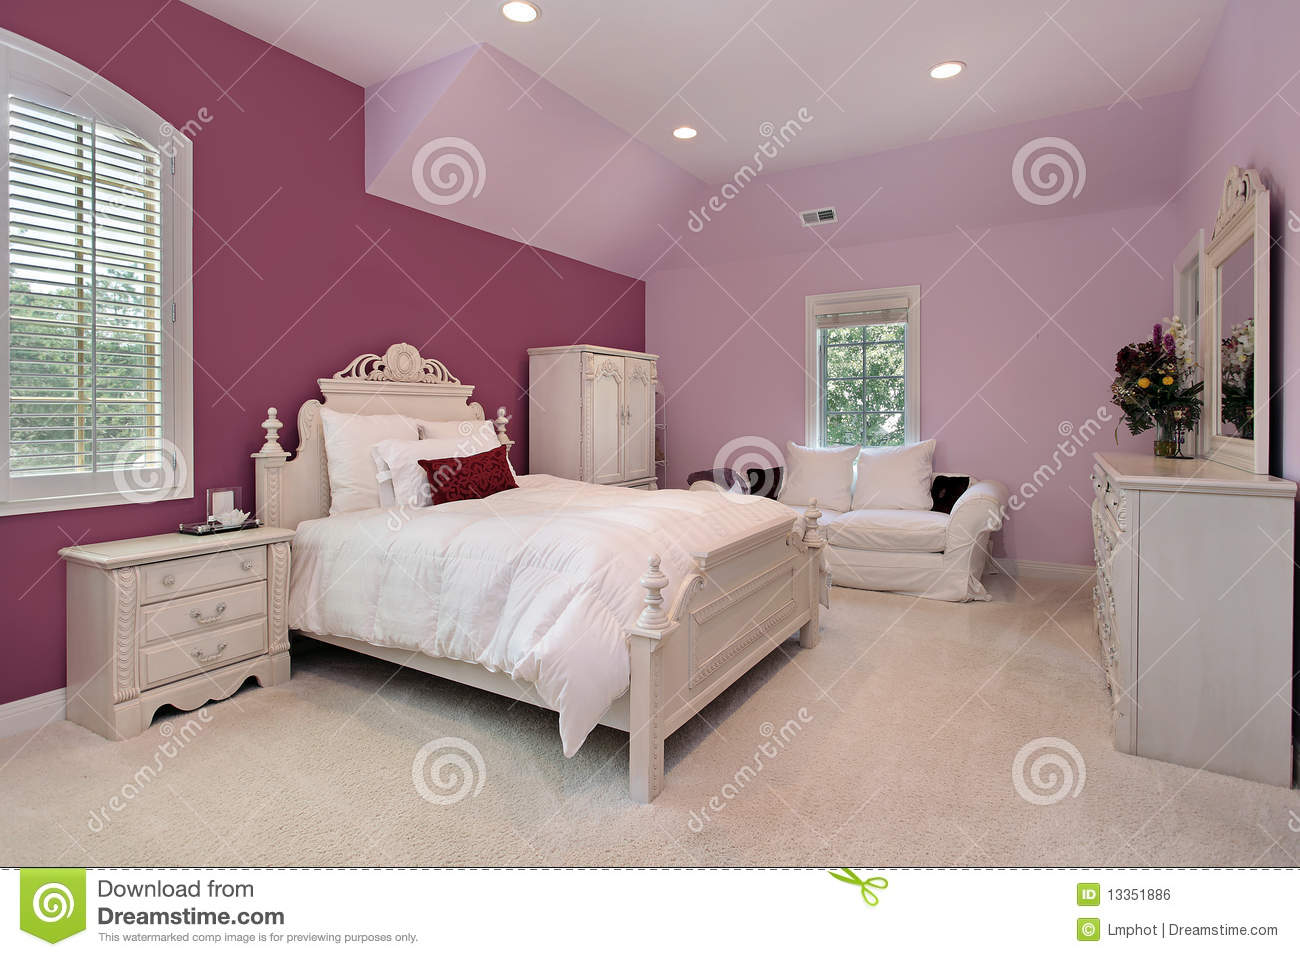 la chambre coucher rose de la fille dans la maison de luxe photo stock image du sofa pi ce. Black Bedroom Furniture Sets. Home Design Ideas